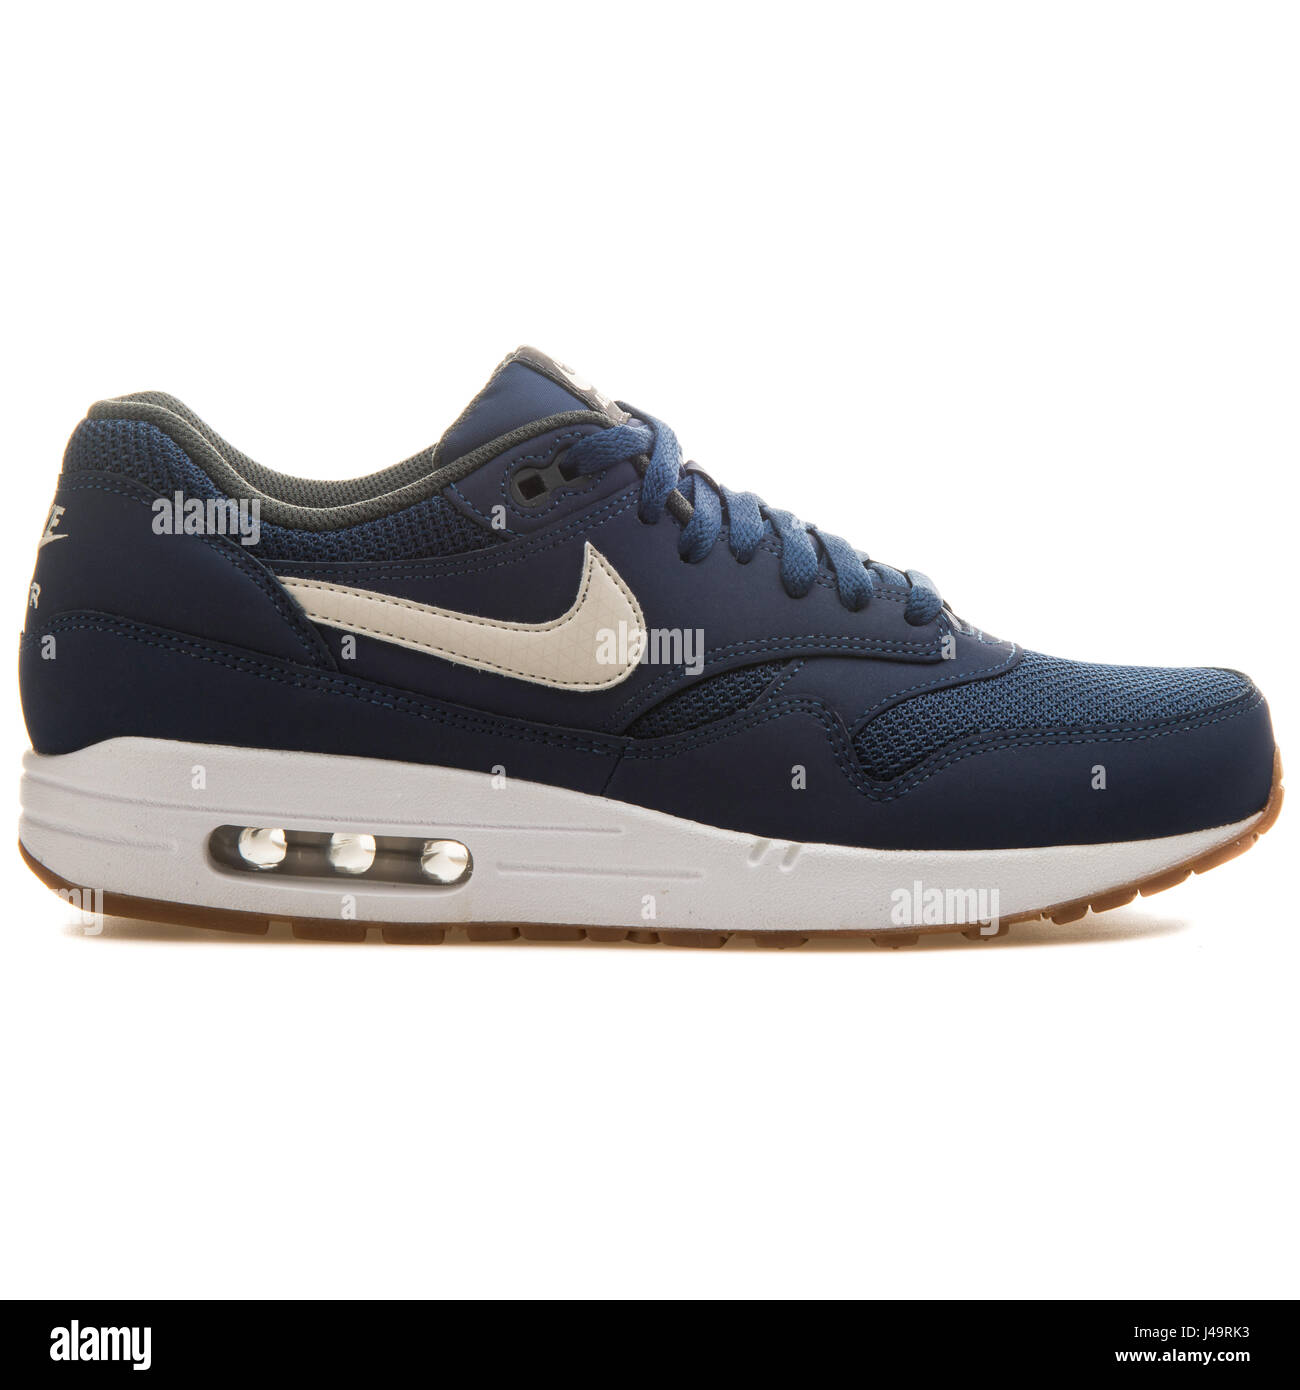 new arrival 7ceb1 11faa Nike Air Max 1 Essential Midnight Navy - 537383-401 - Stock Image